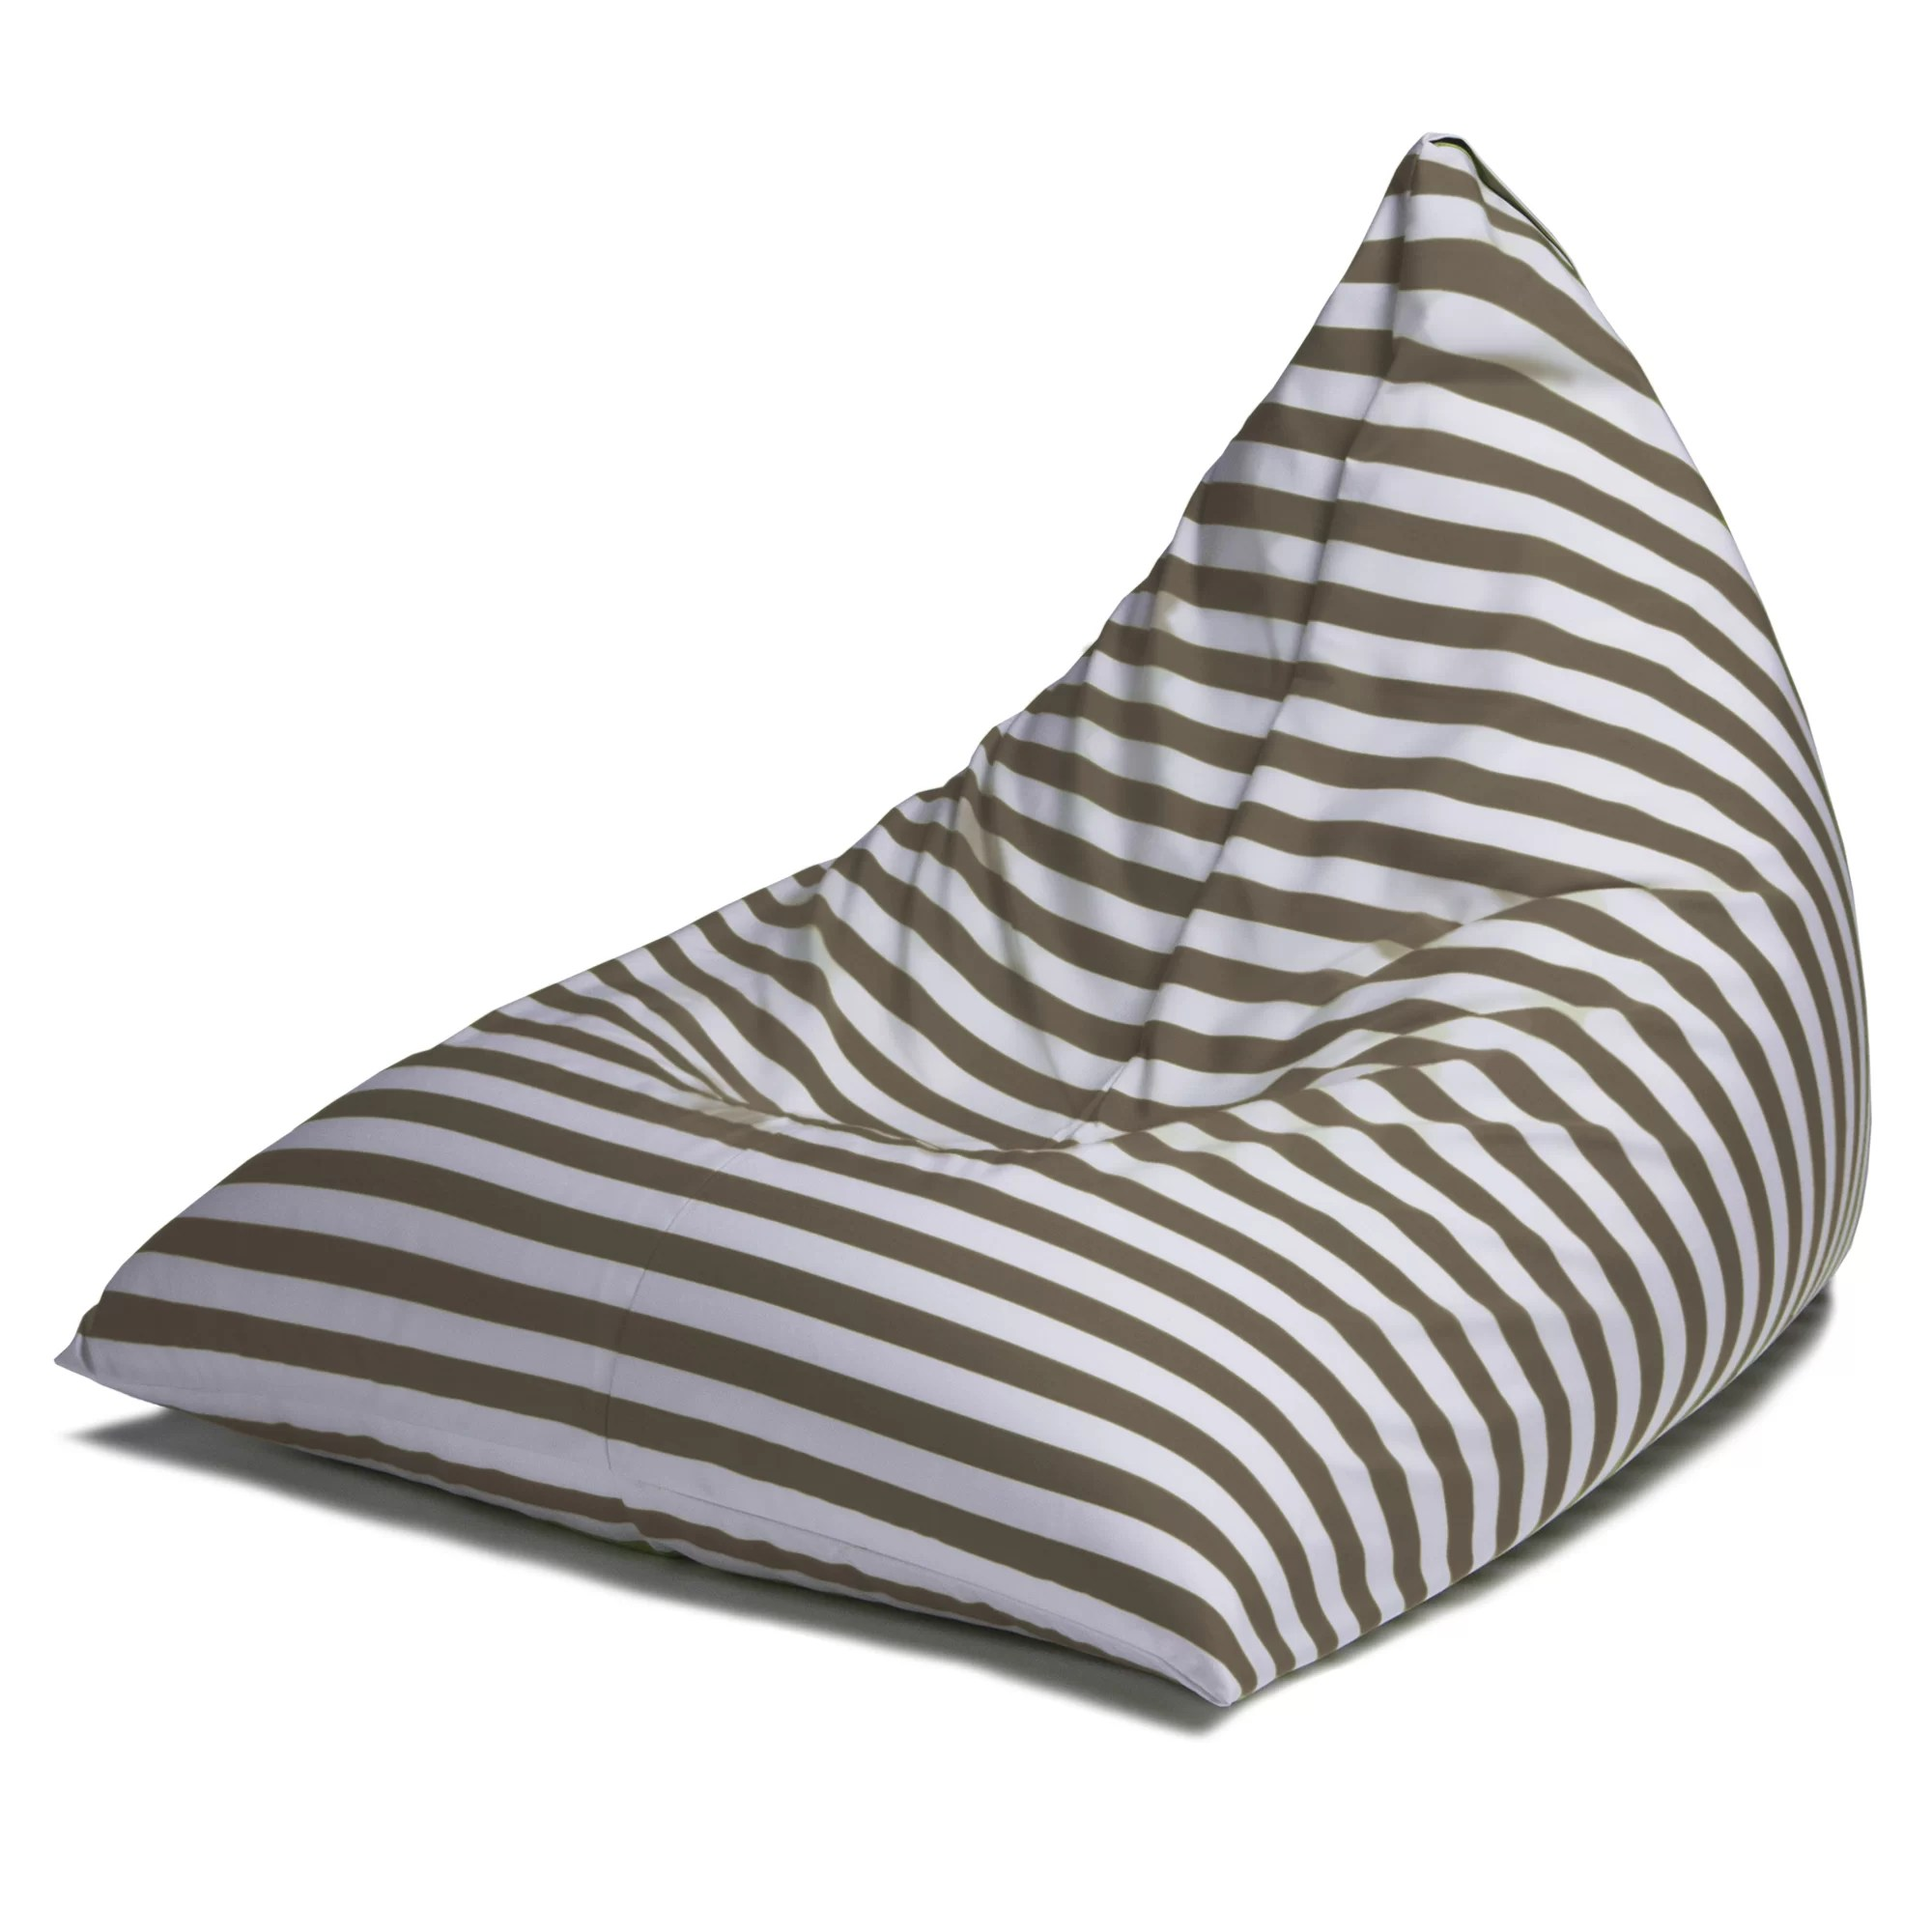 Beanbag Chairs Jaxx Twist Outdoor Bean Bag Chair And Reviews Wayfair